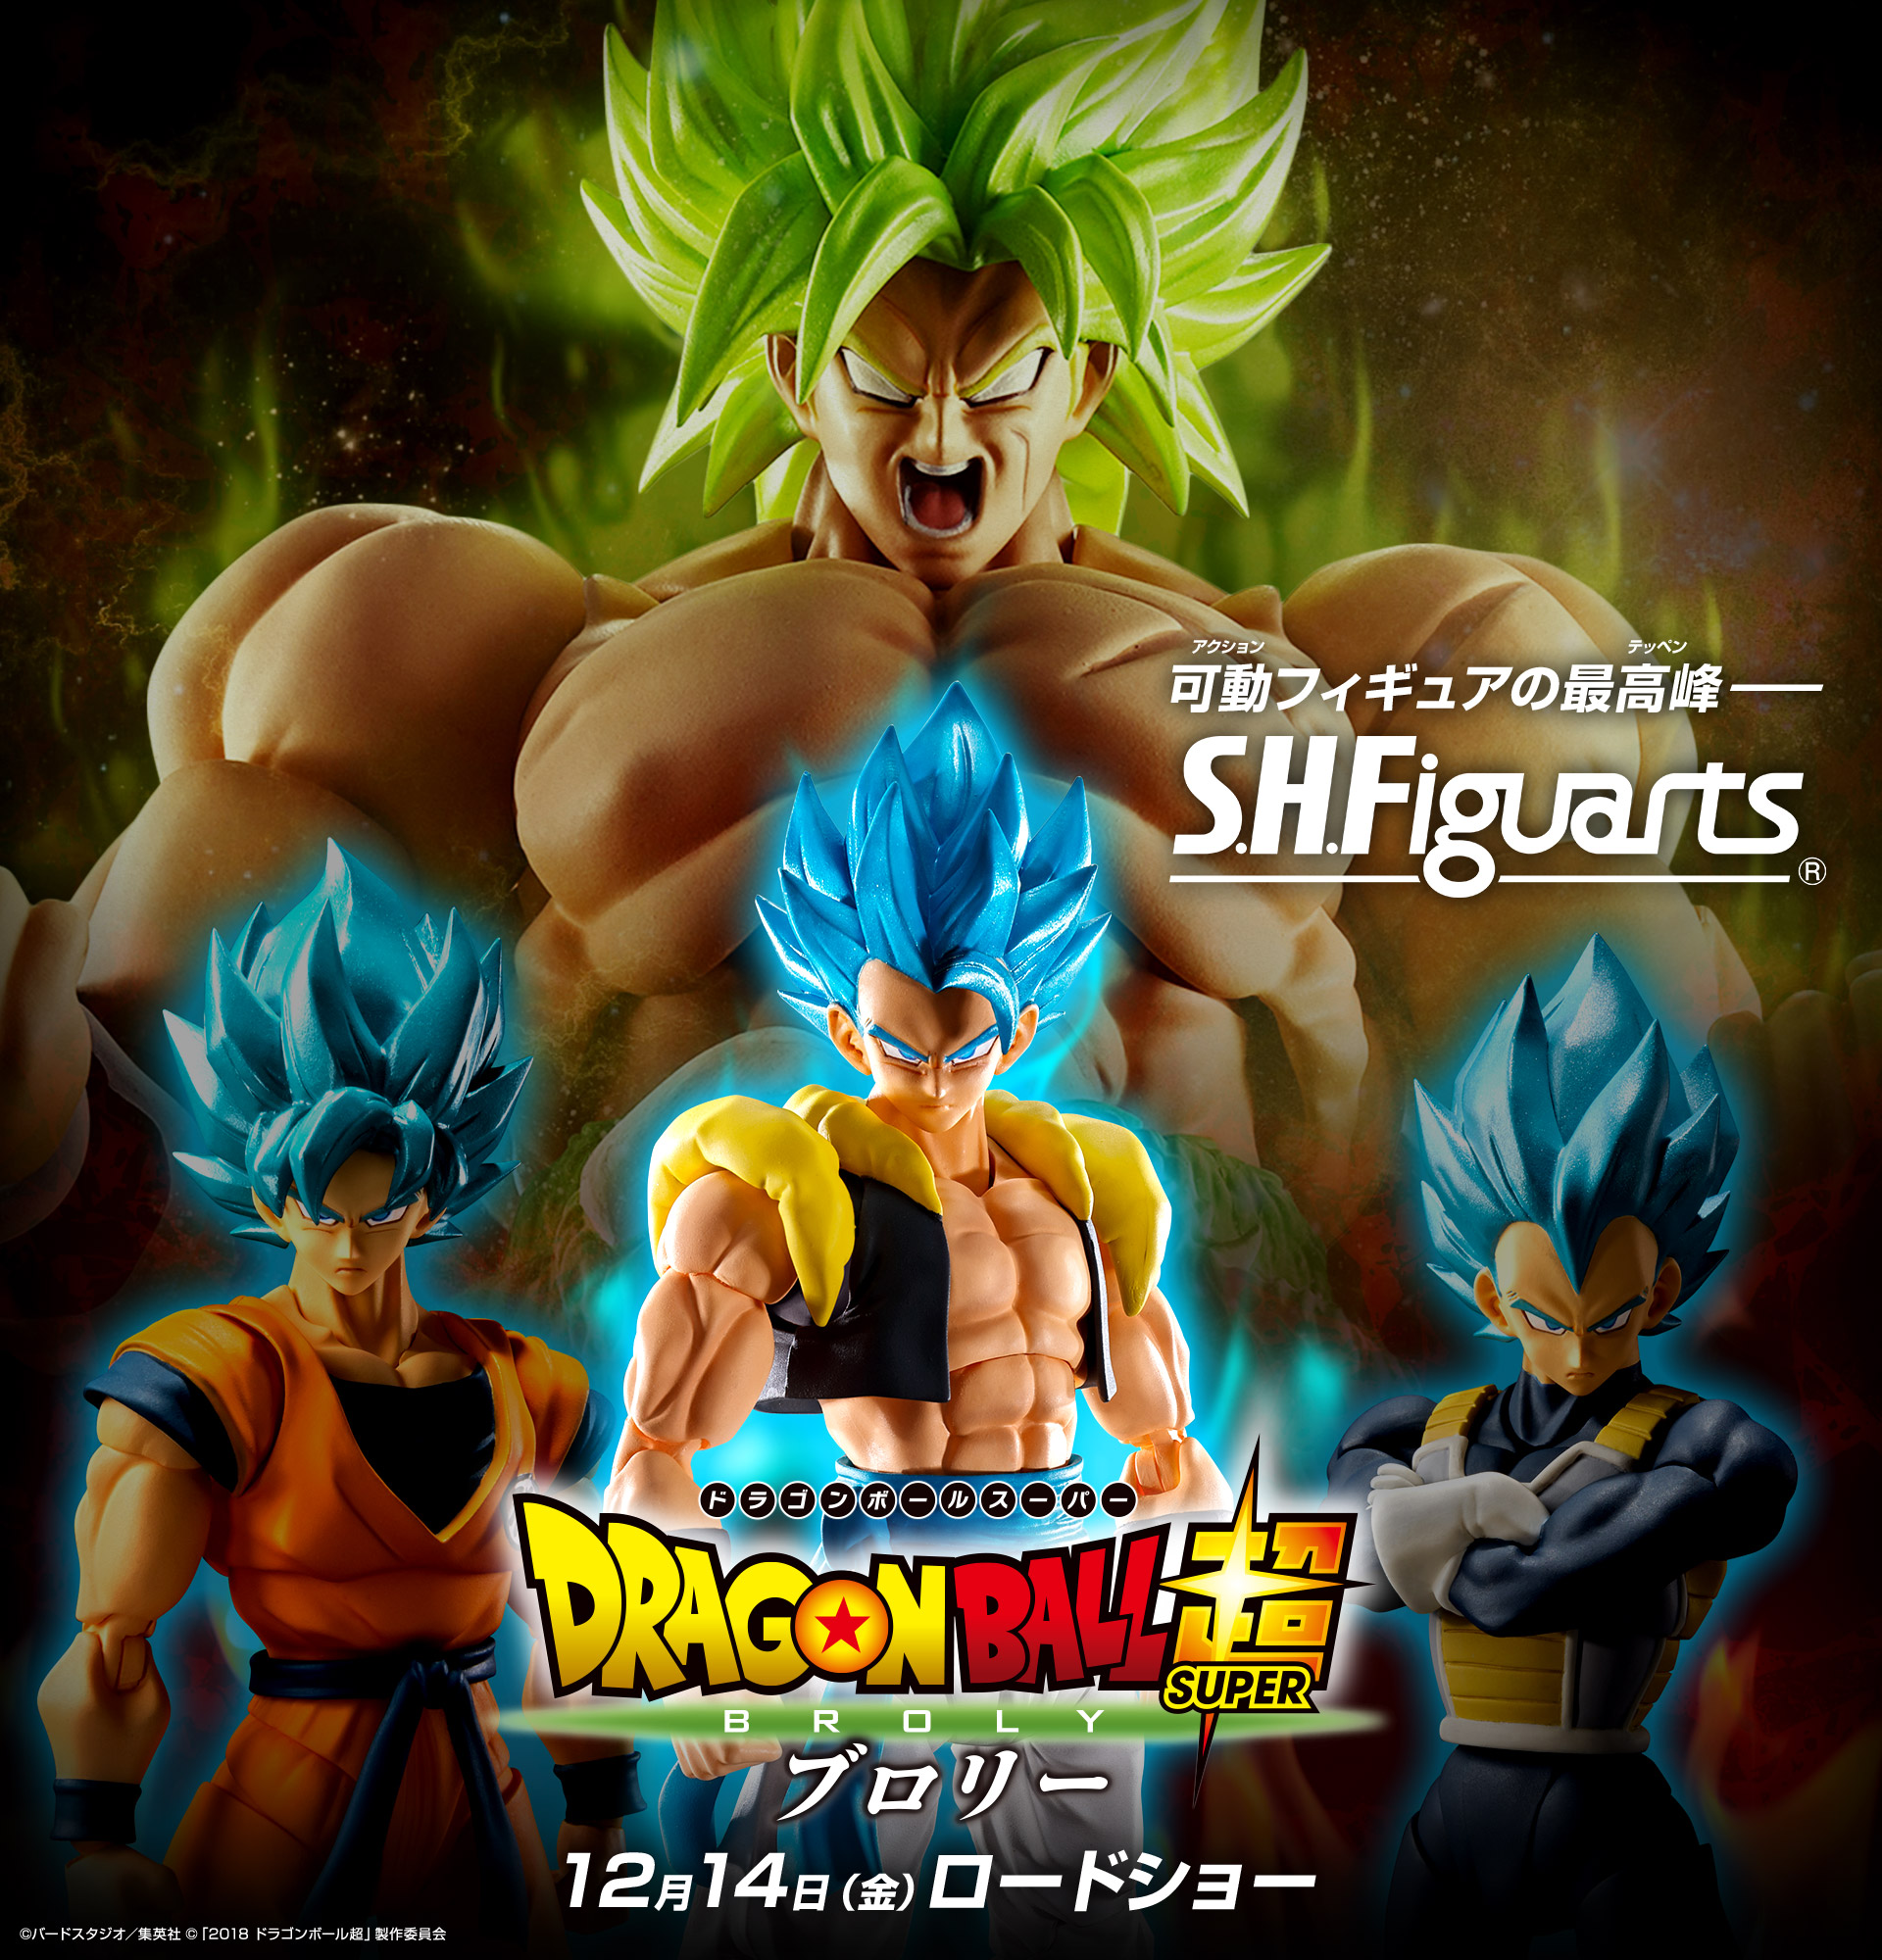 Dragon Ball Super : S.H.Figuarts de Gogeta Blue, Broly Full Power et Vegeta Blue annoncées